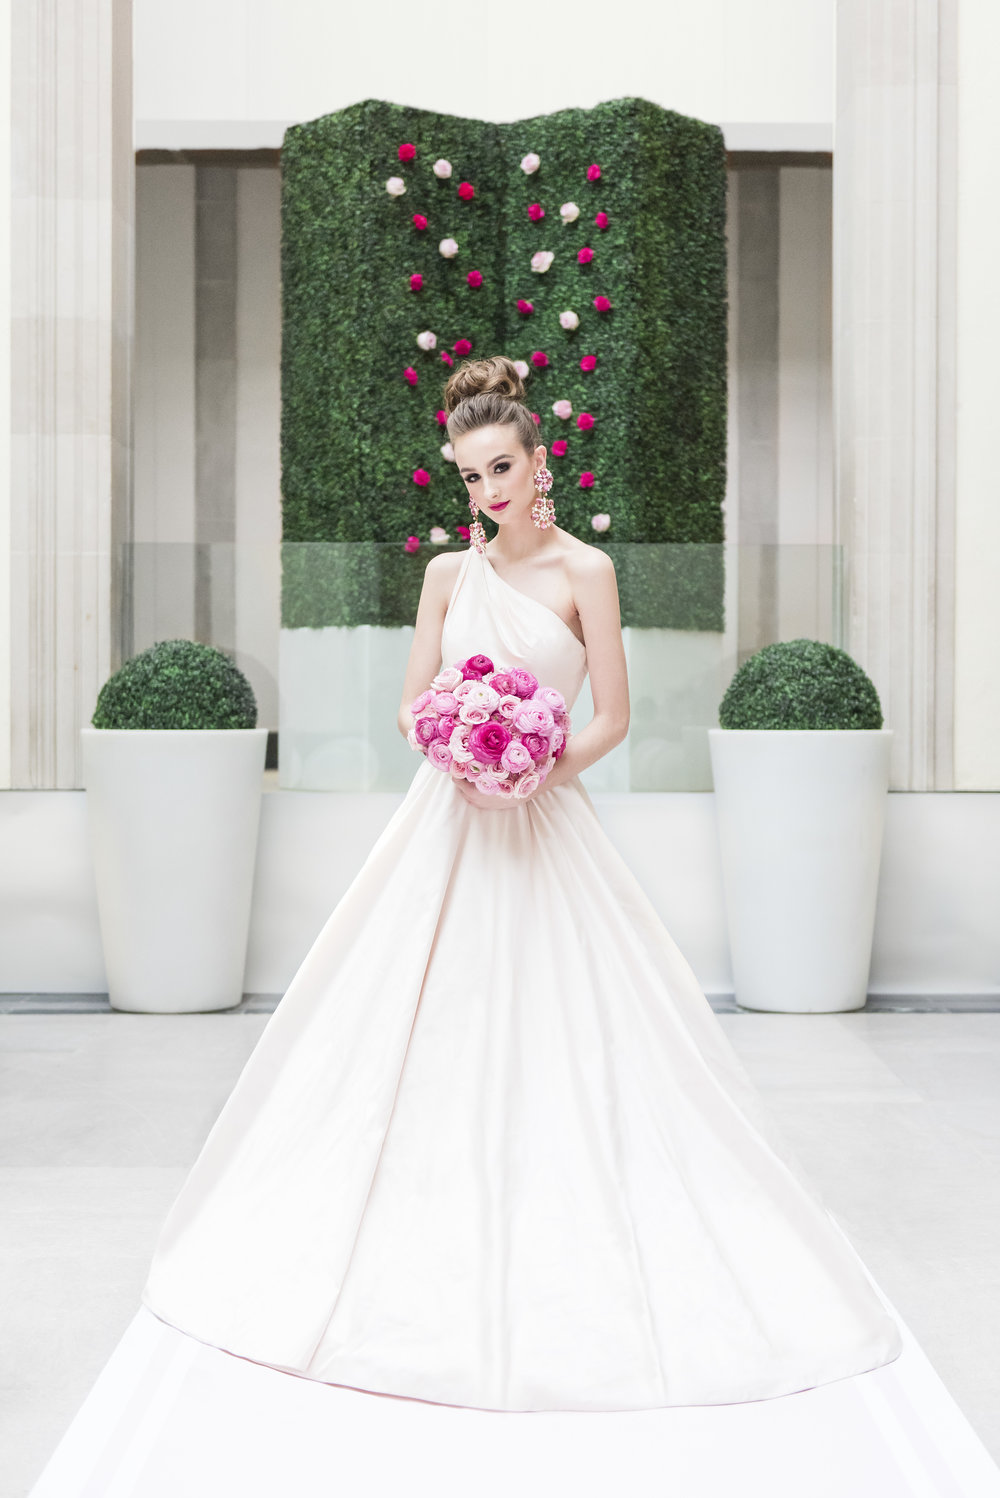 Bride in garden ceremony - Dior Darling (Wedluxe)